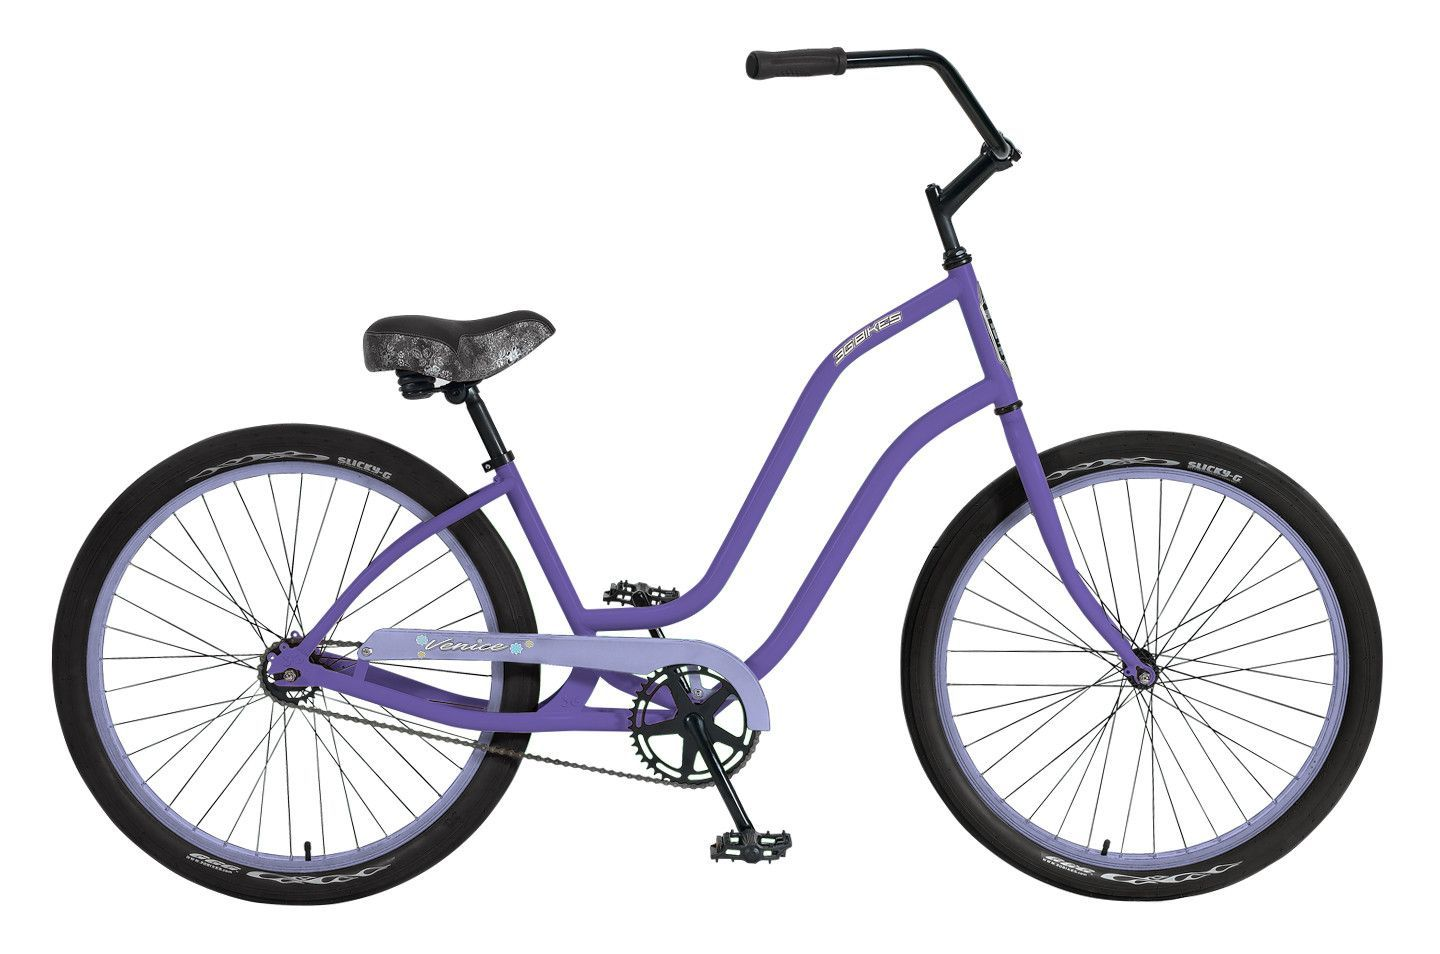 Venice Single Speed Bicycle, Girls 20 inch bike, Cruisers